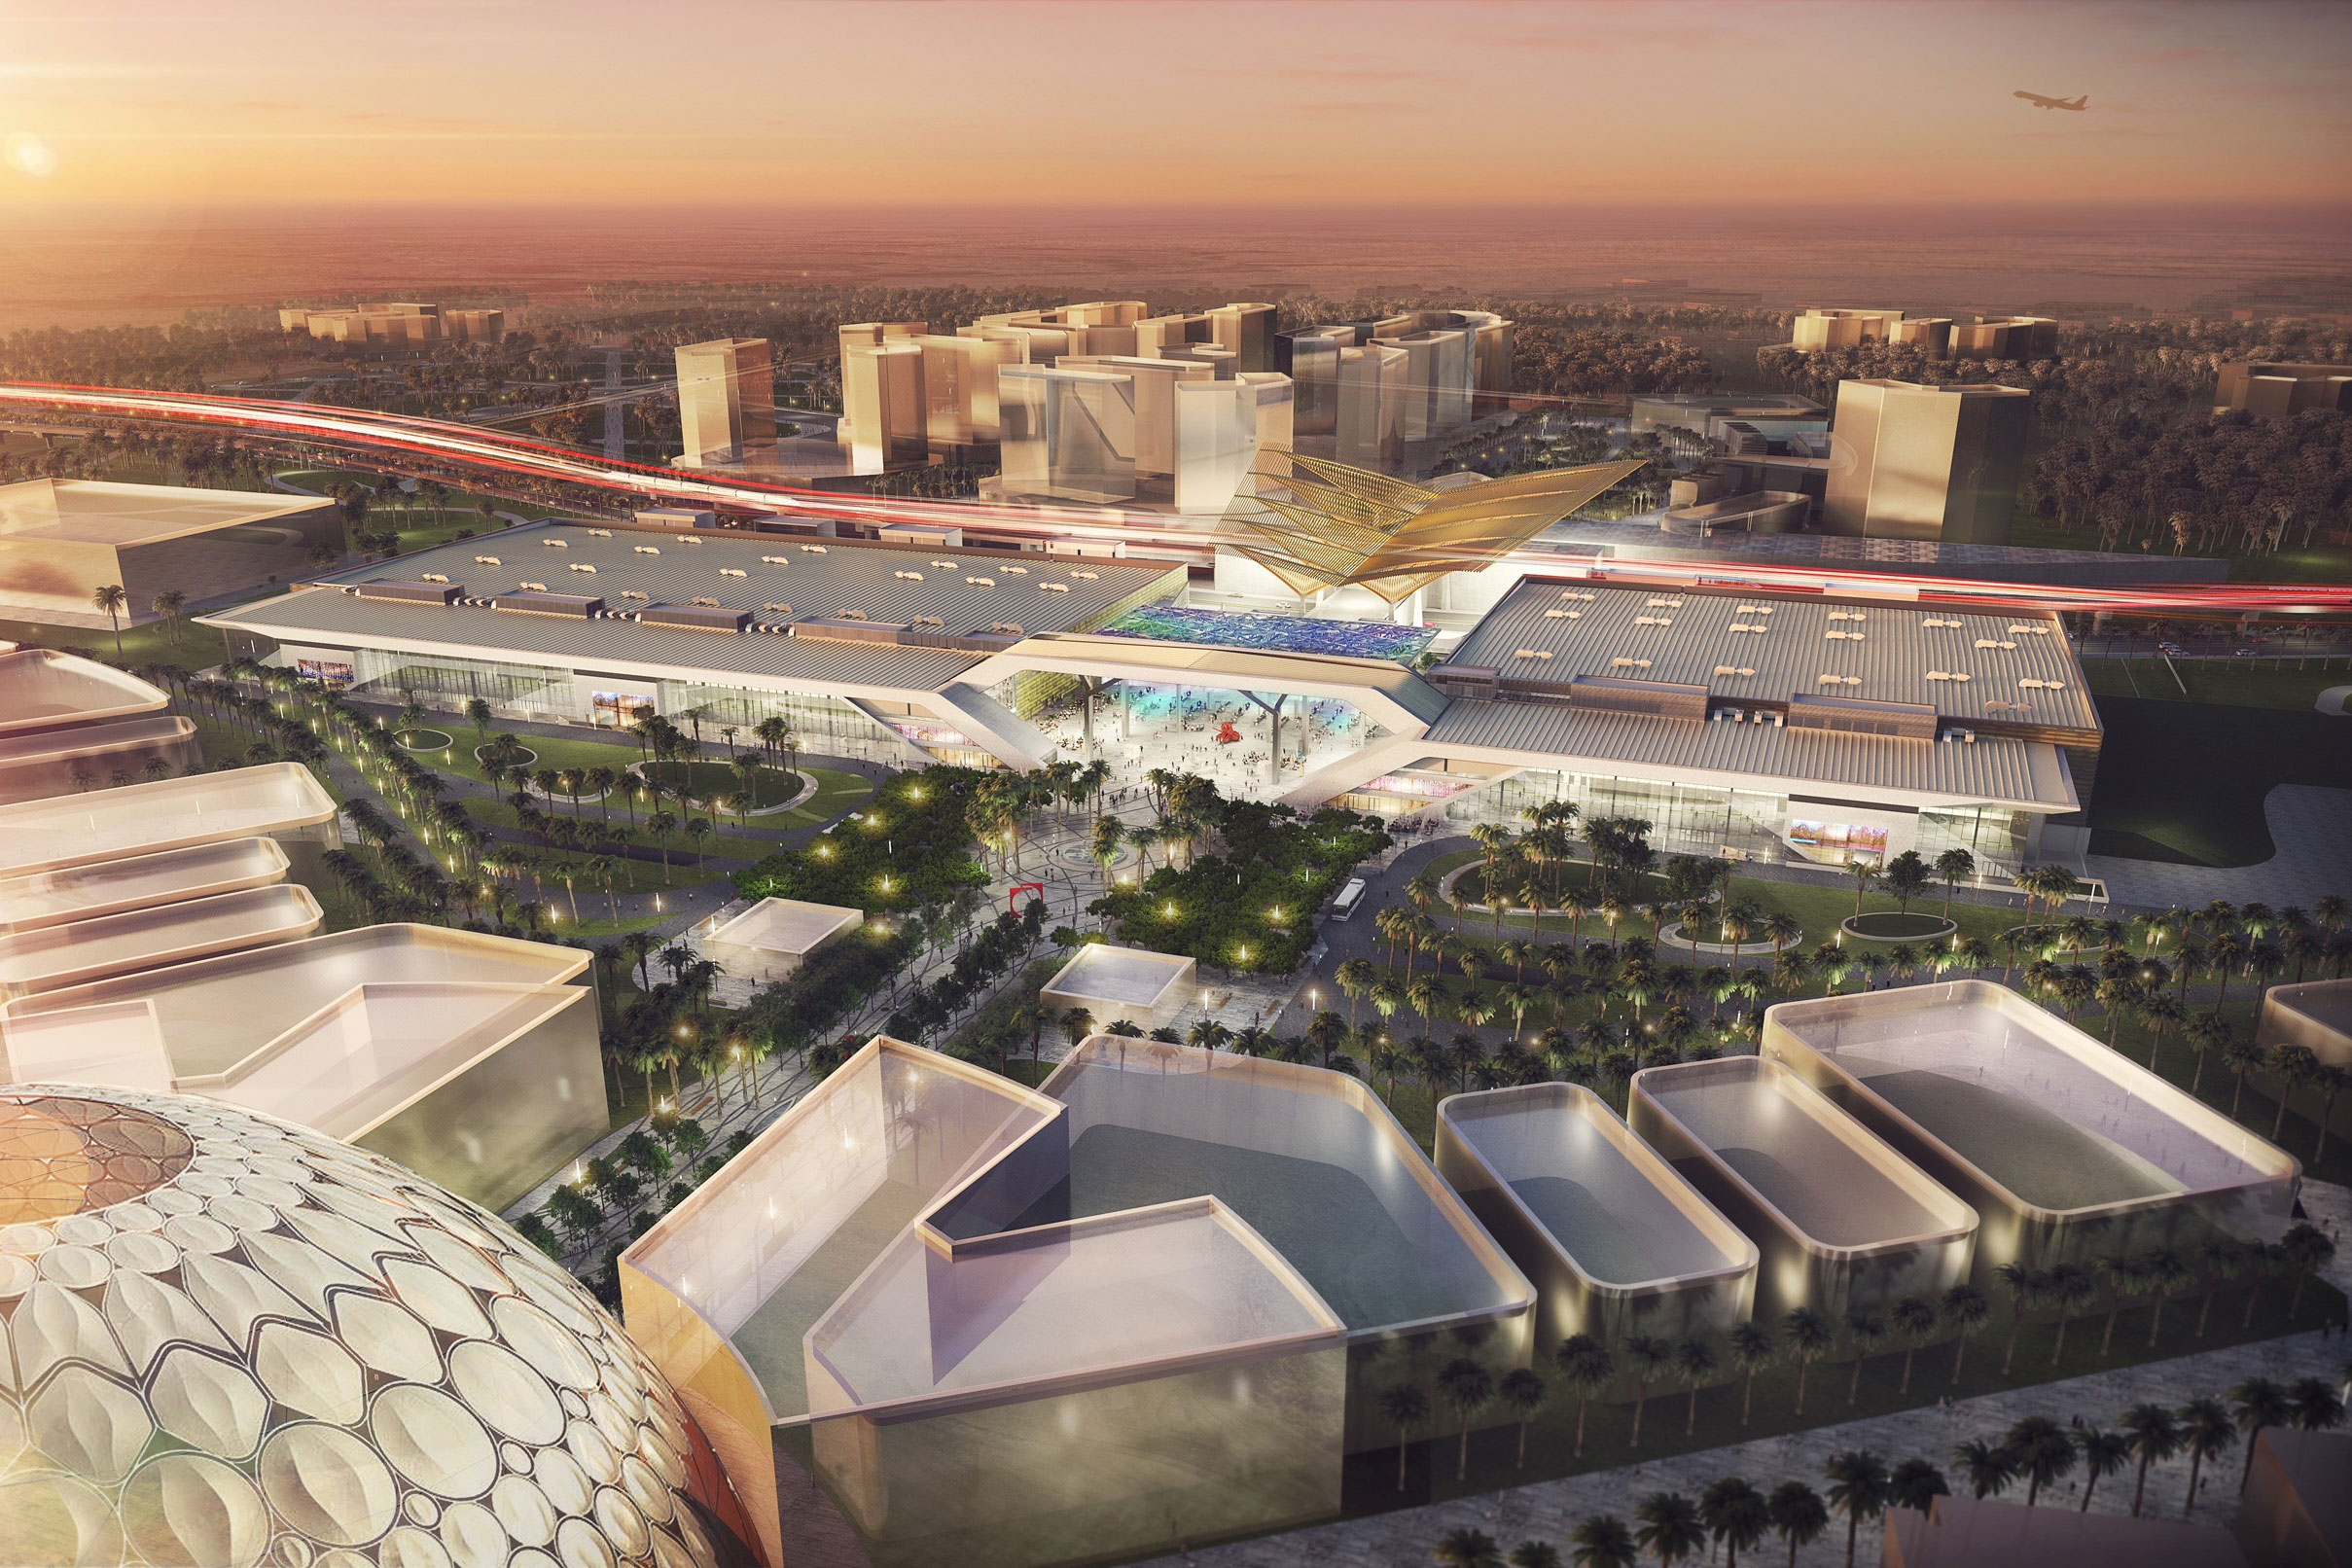 Dubai's 2025 vision: the most visited city in the world